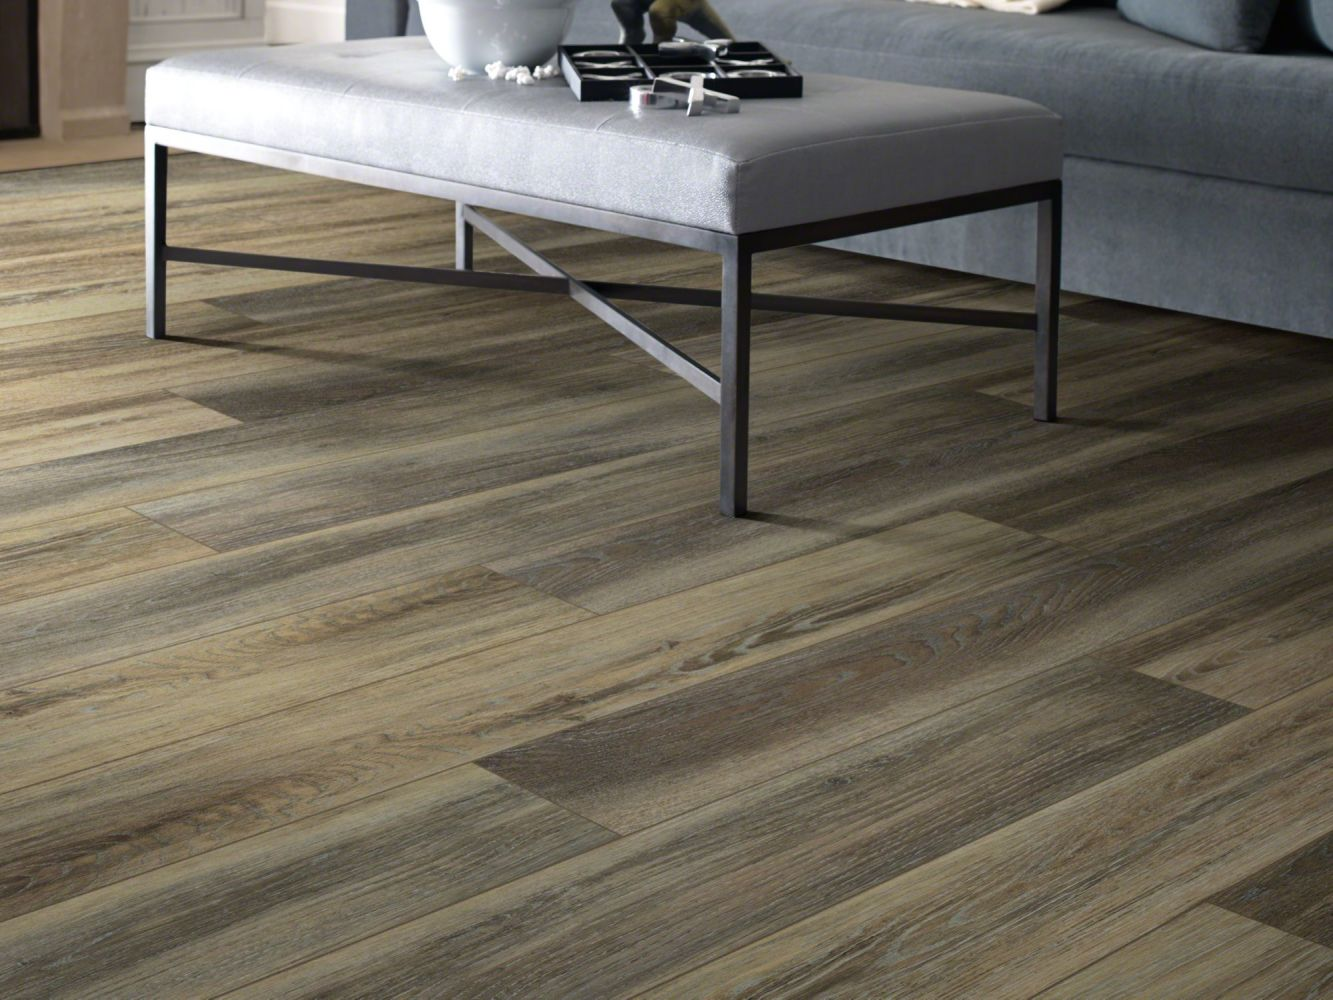 Shaw Floors Resilient Property Solutions Lazio Plus Sabbia 00161_VE230